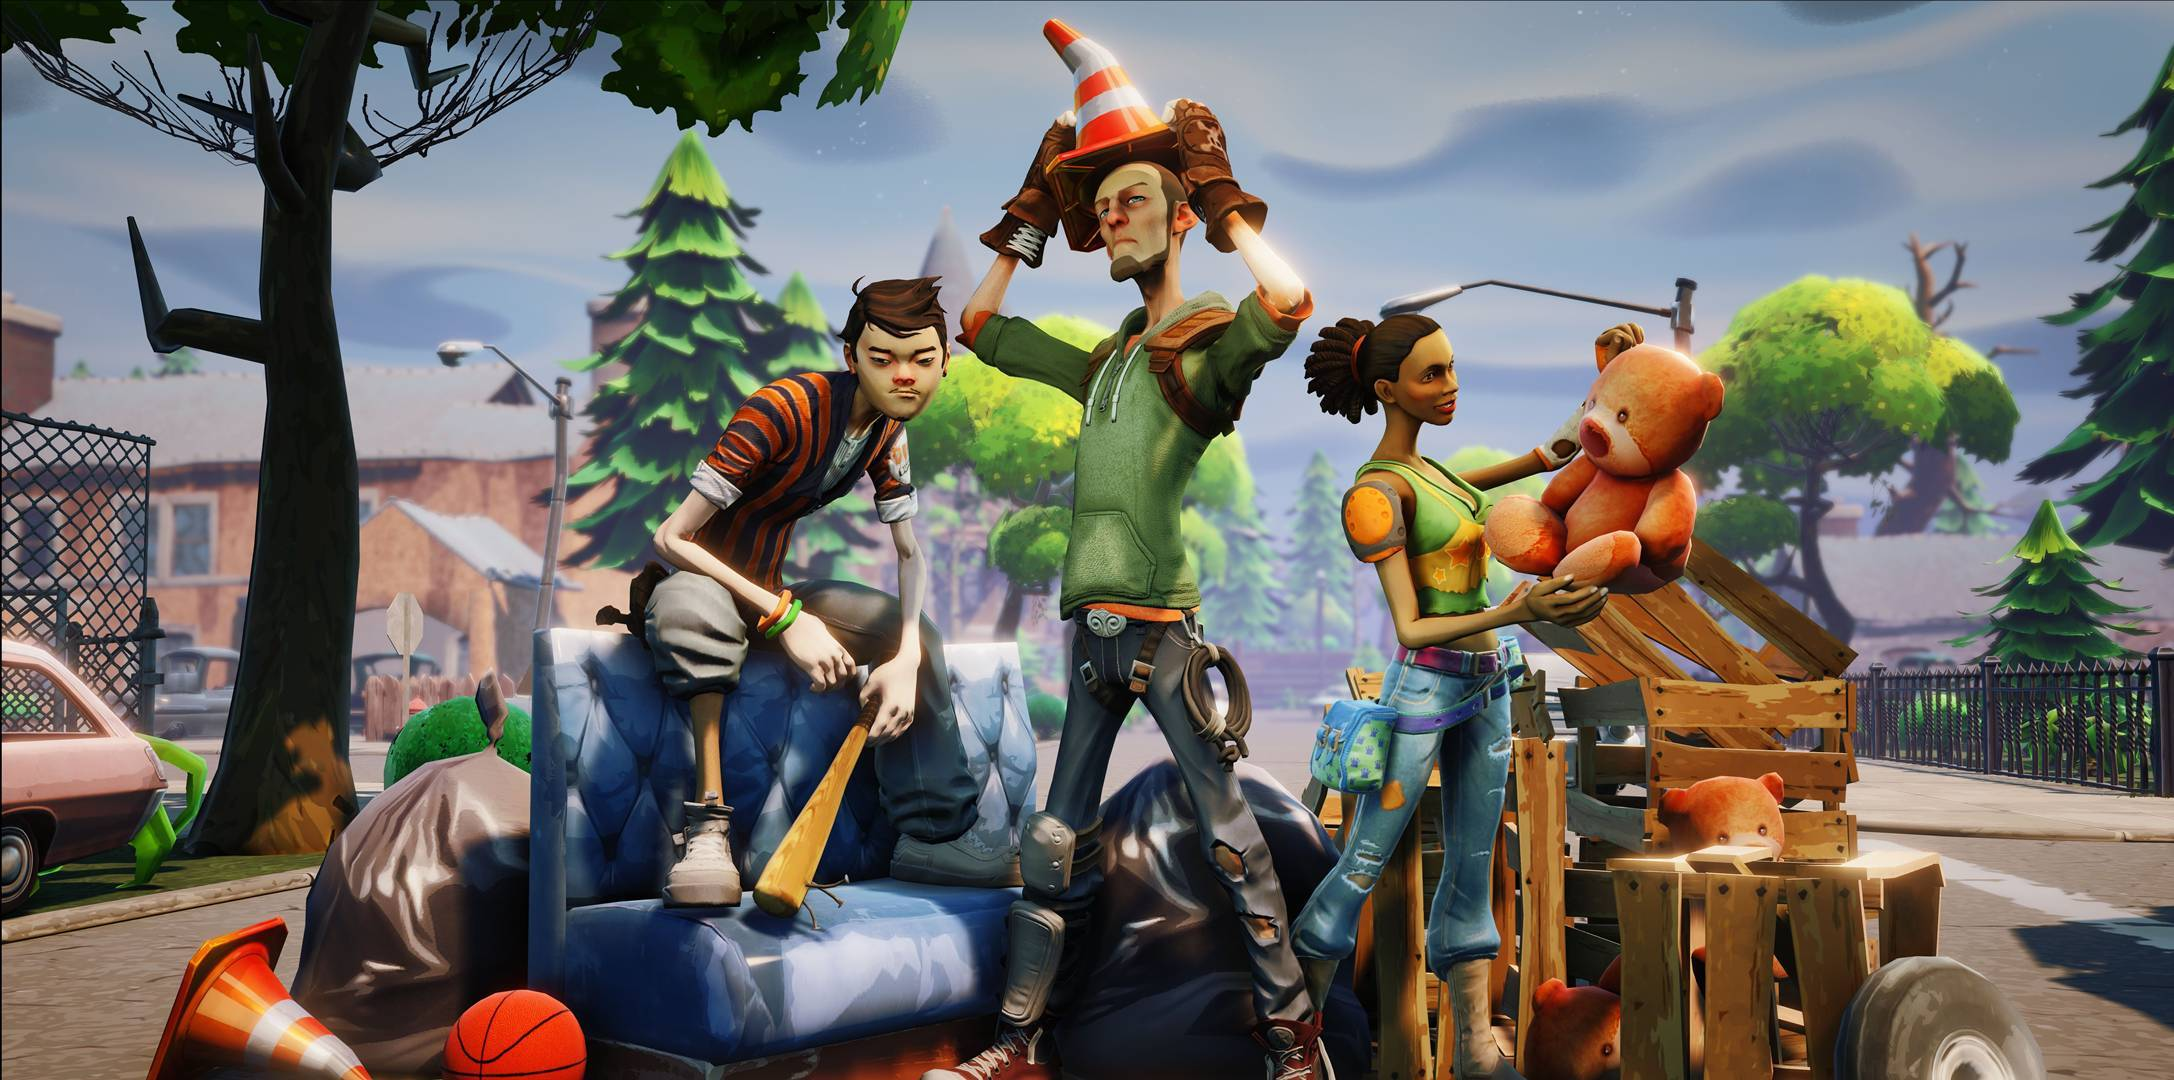 Fortnite Wallpapers in 1080P HD « Video Game News, Reviews